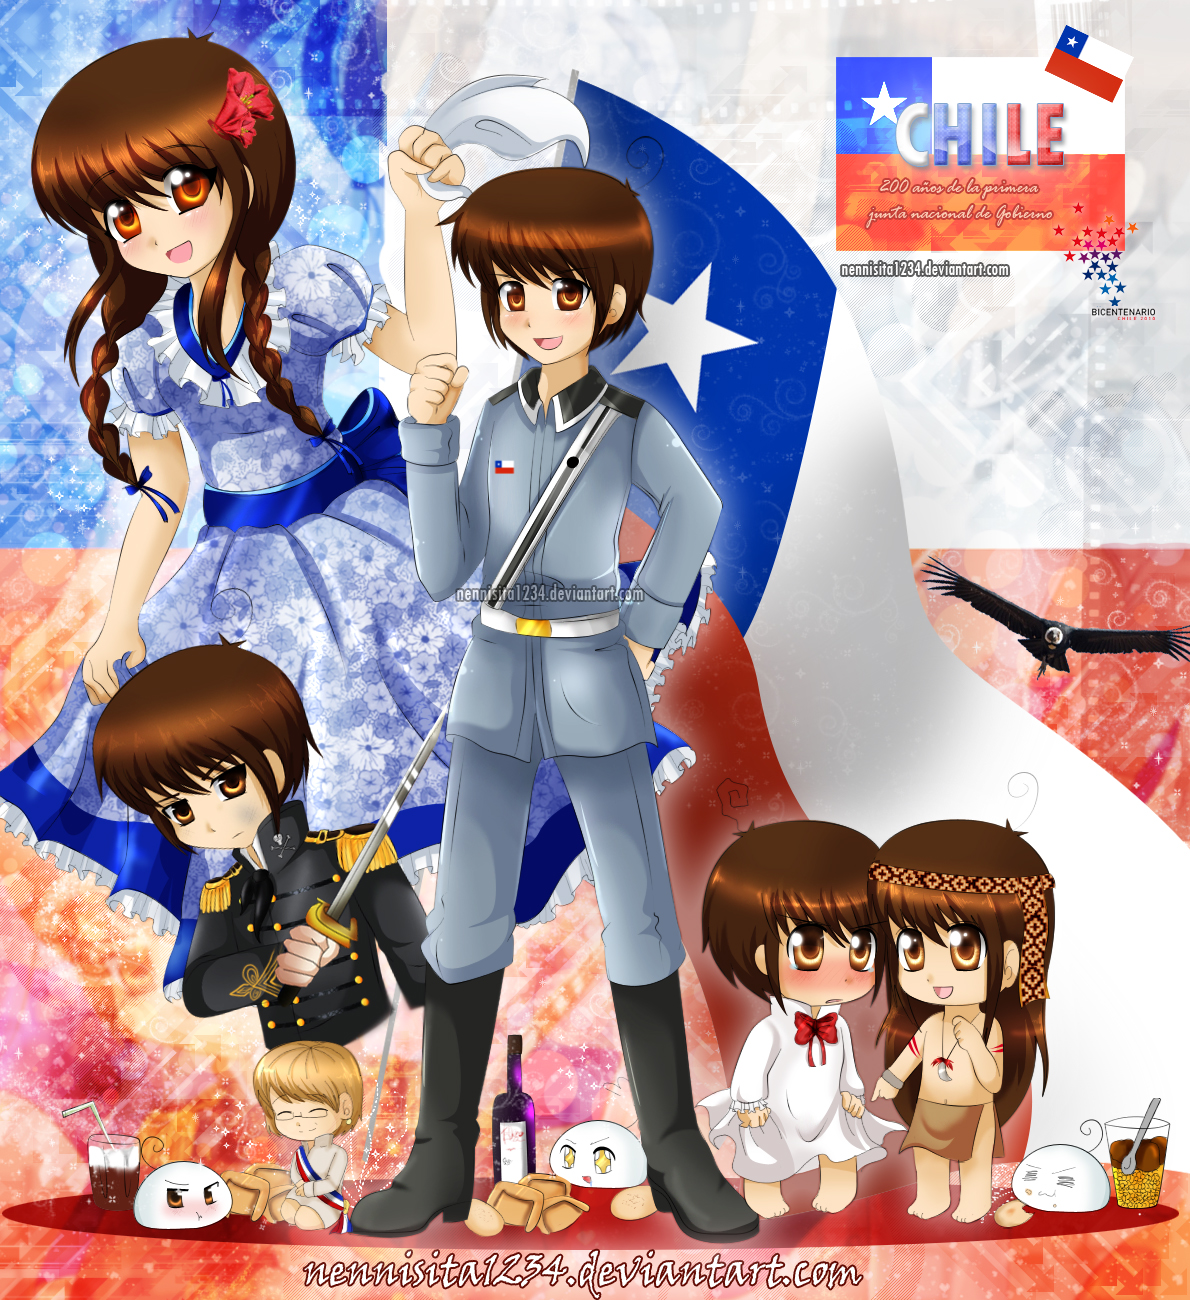 Ficha Chile Htmr__chile_bicentenary_by_nennisita1234-d2yvlsr